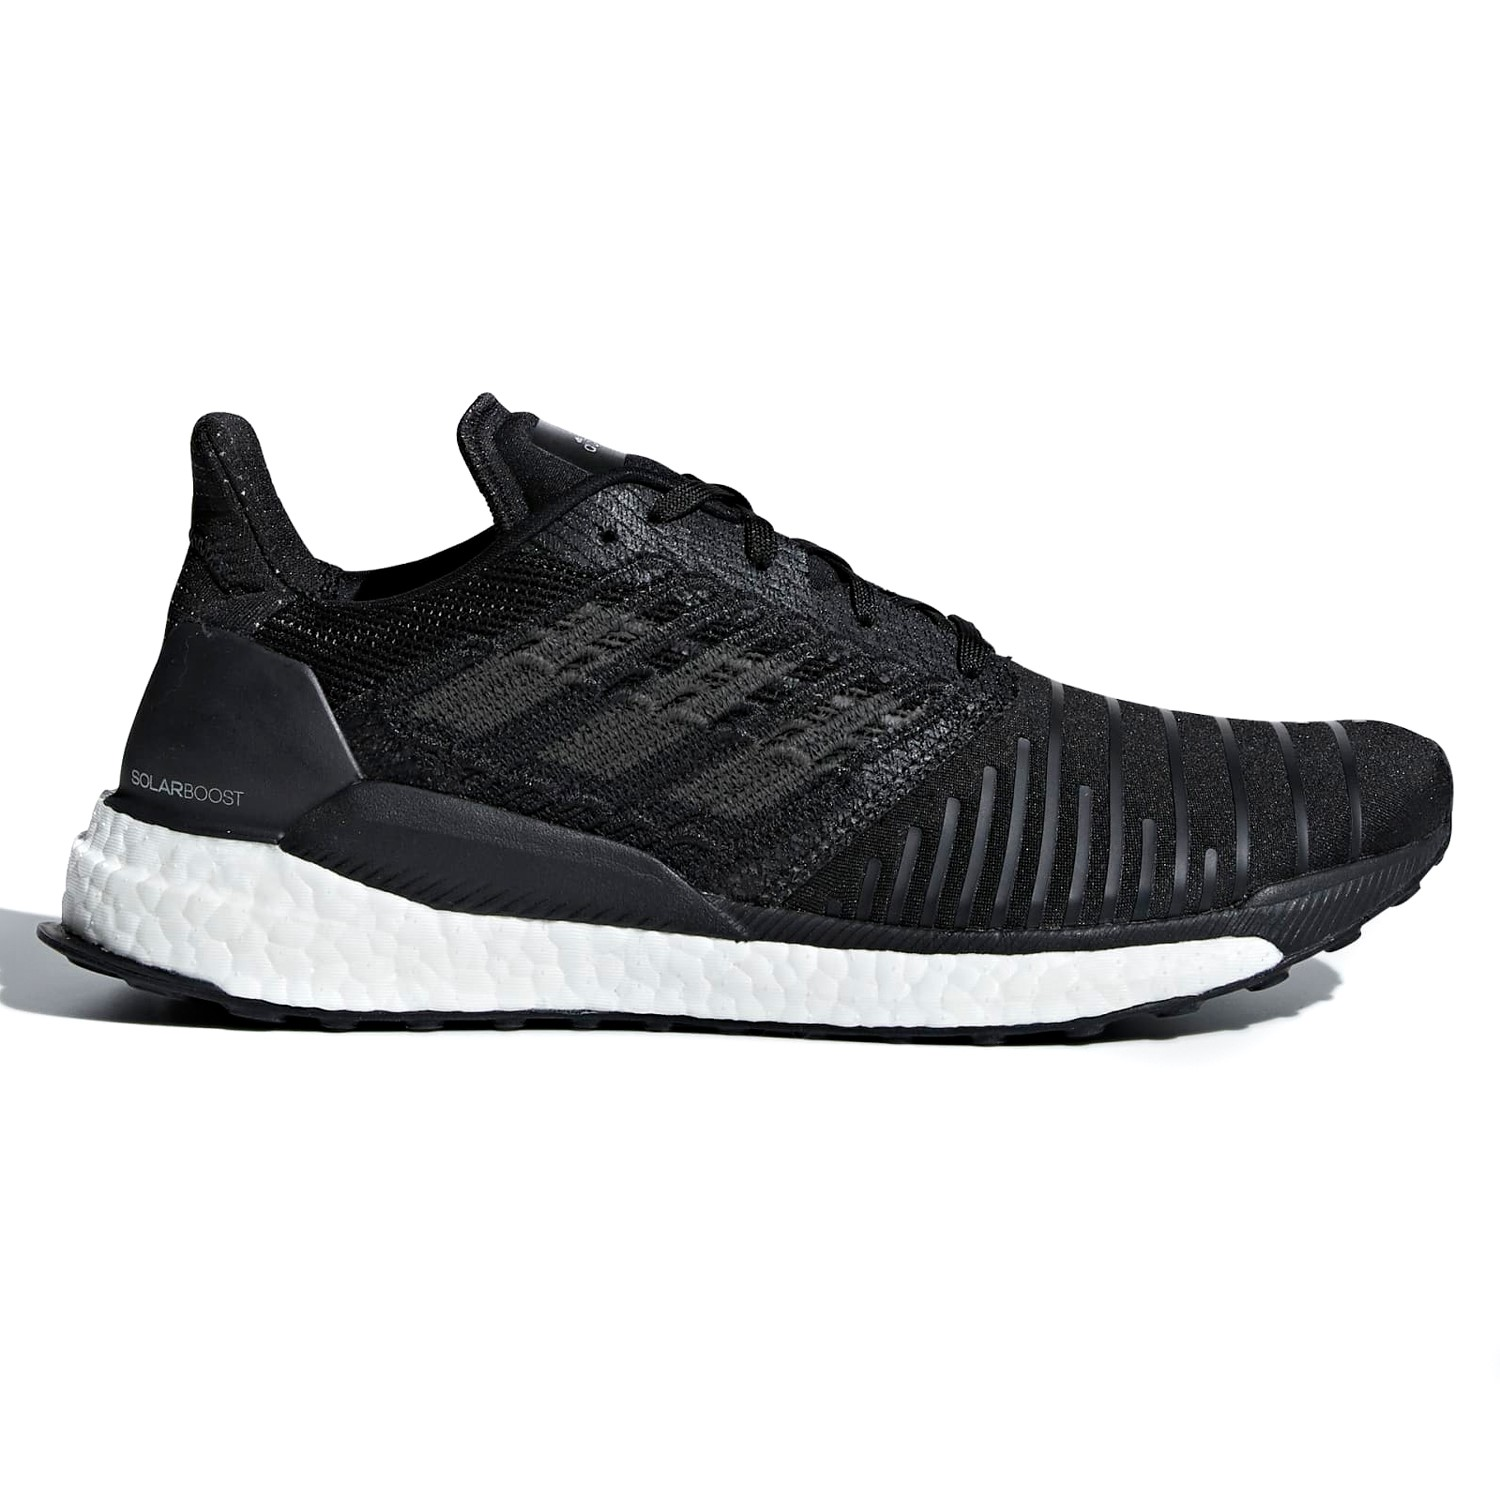 9f230d64cde38 Adidas Solar Boost - Mens Running Shoes - Core Black Grey Footwear White